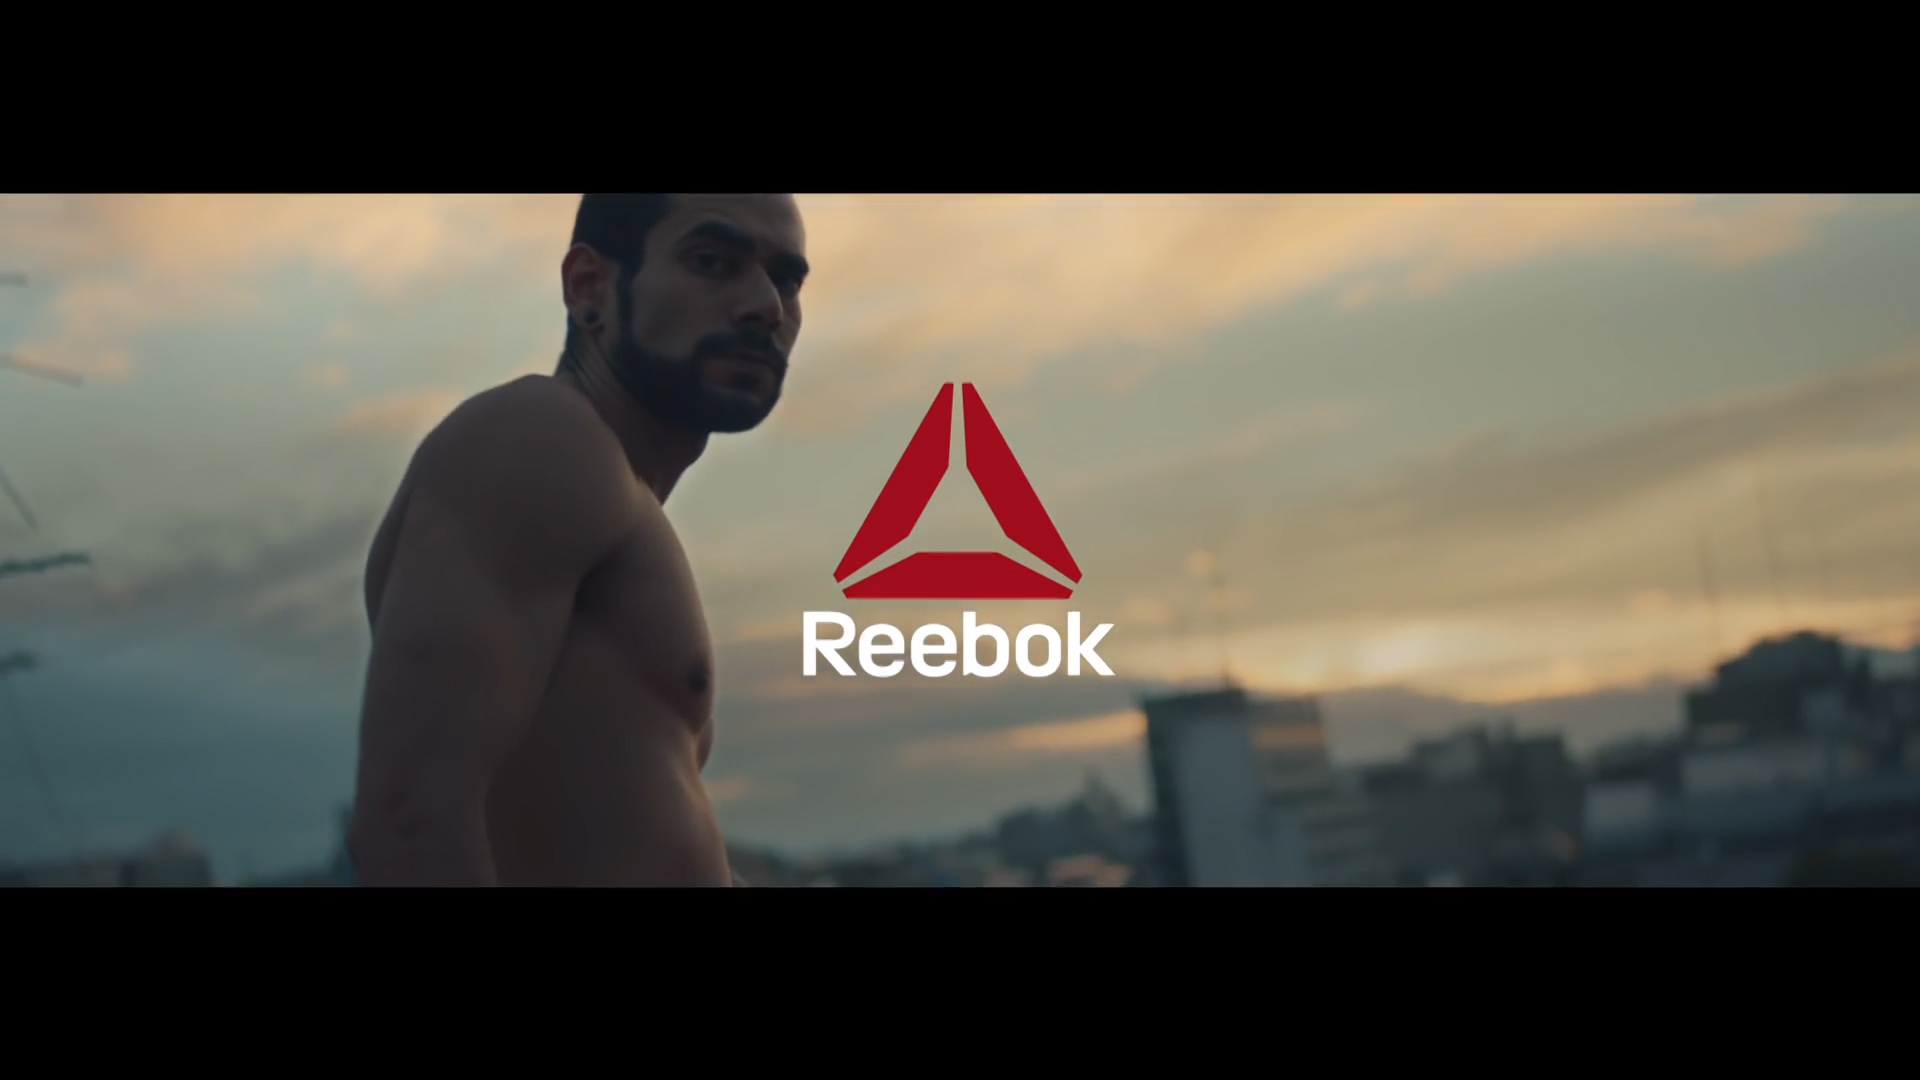 Be more human - Reebok